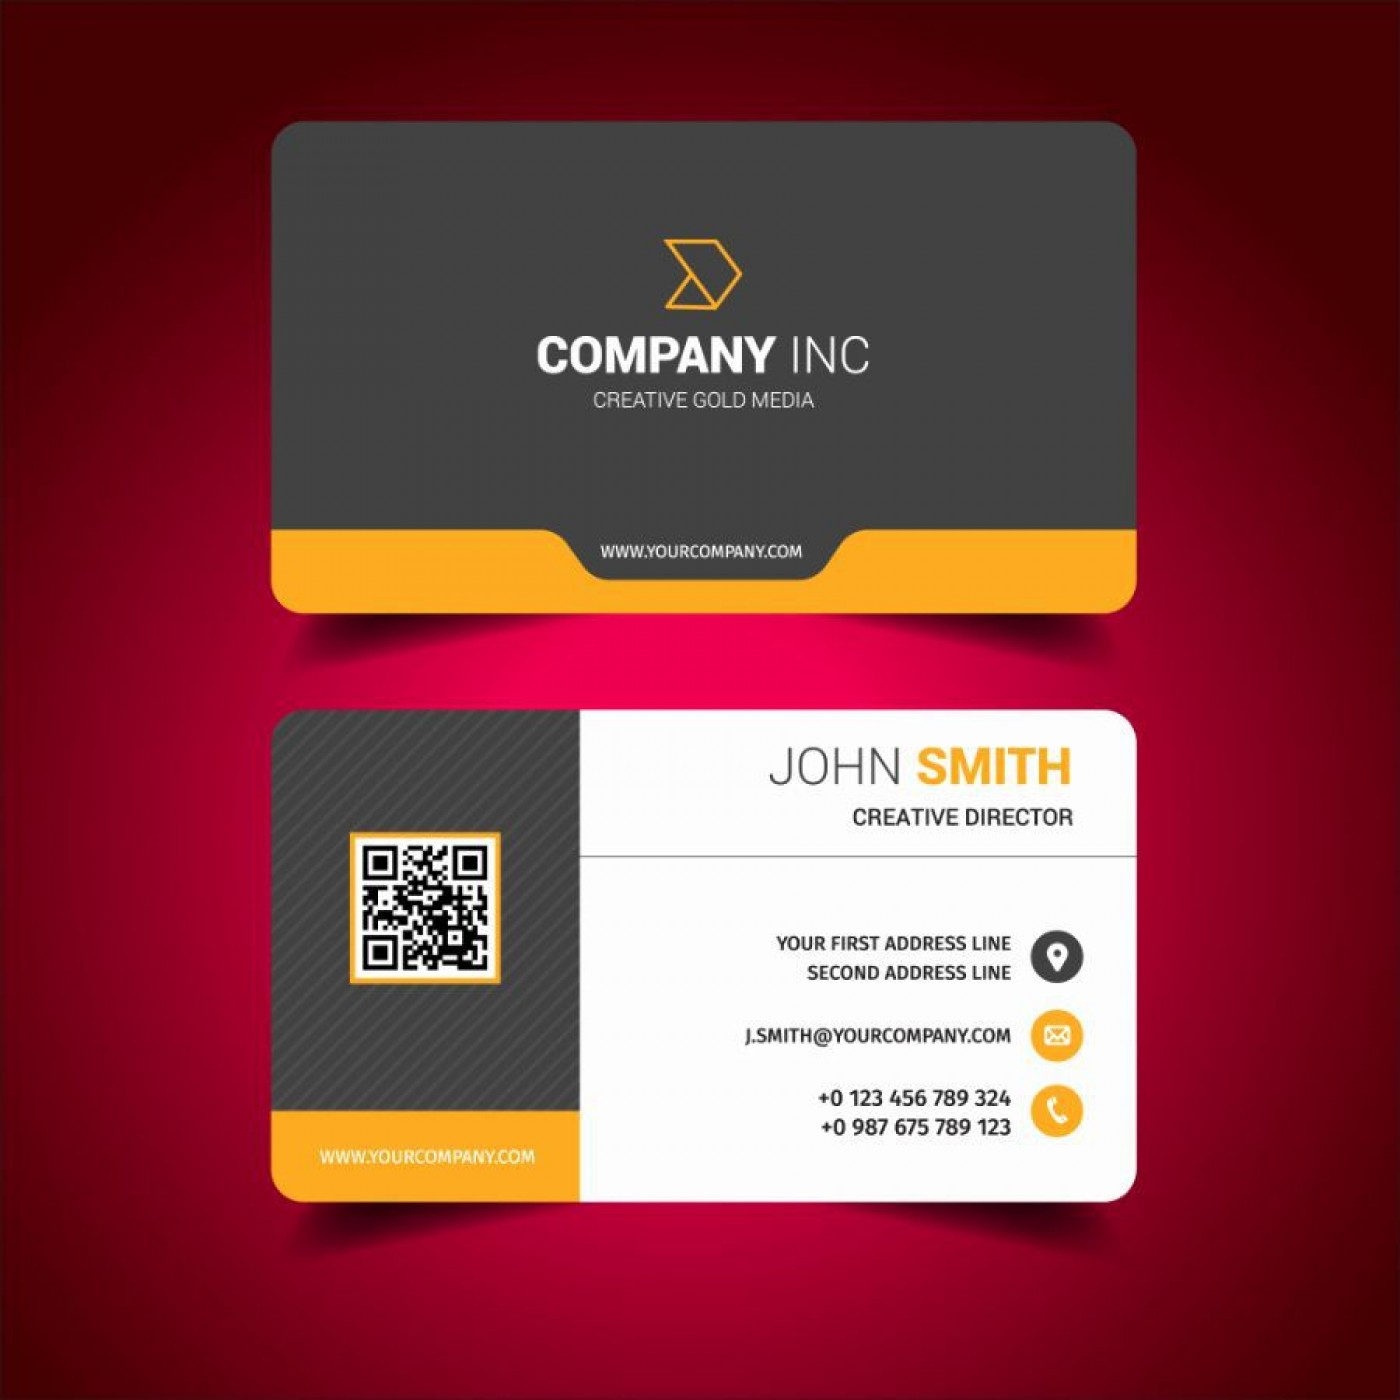 001 Exceptional Download Busines Card Template Concept  Free For Illustrator Visiting Layout Word 20101400